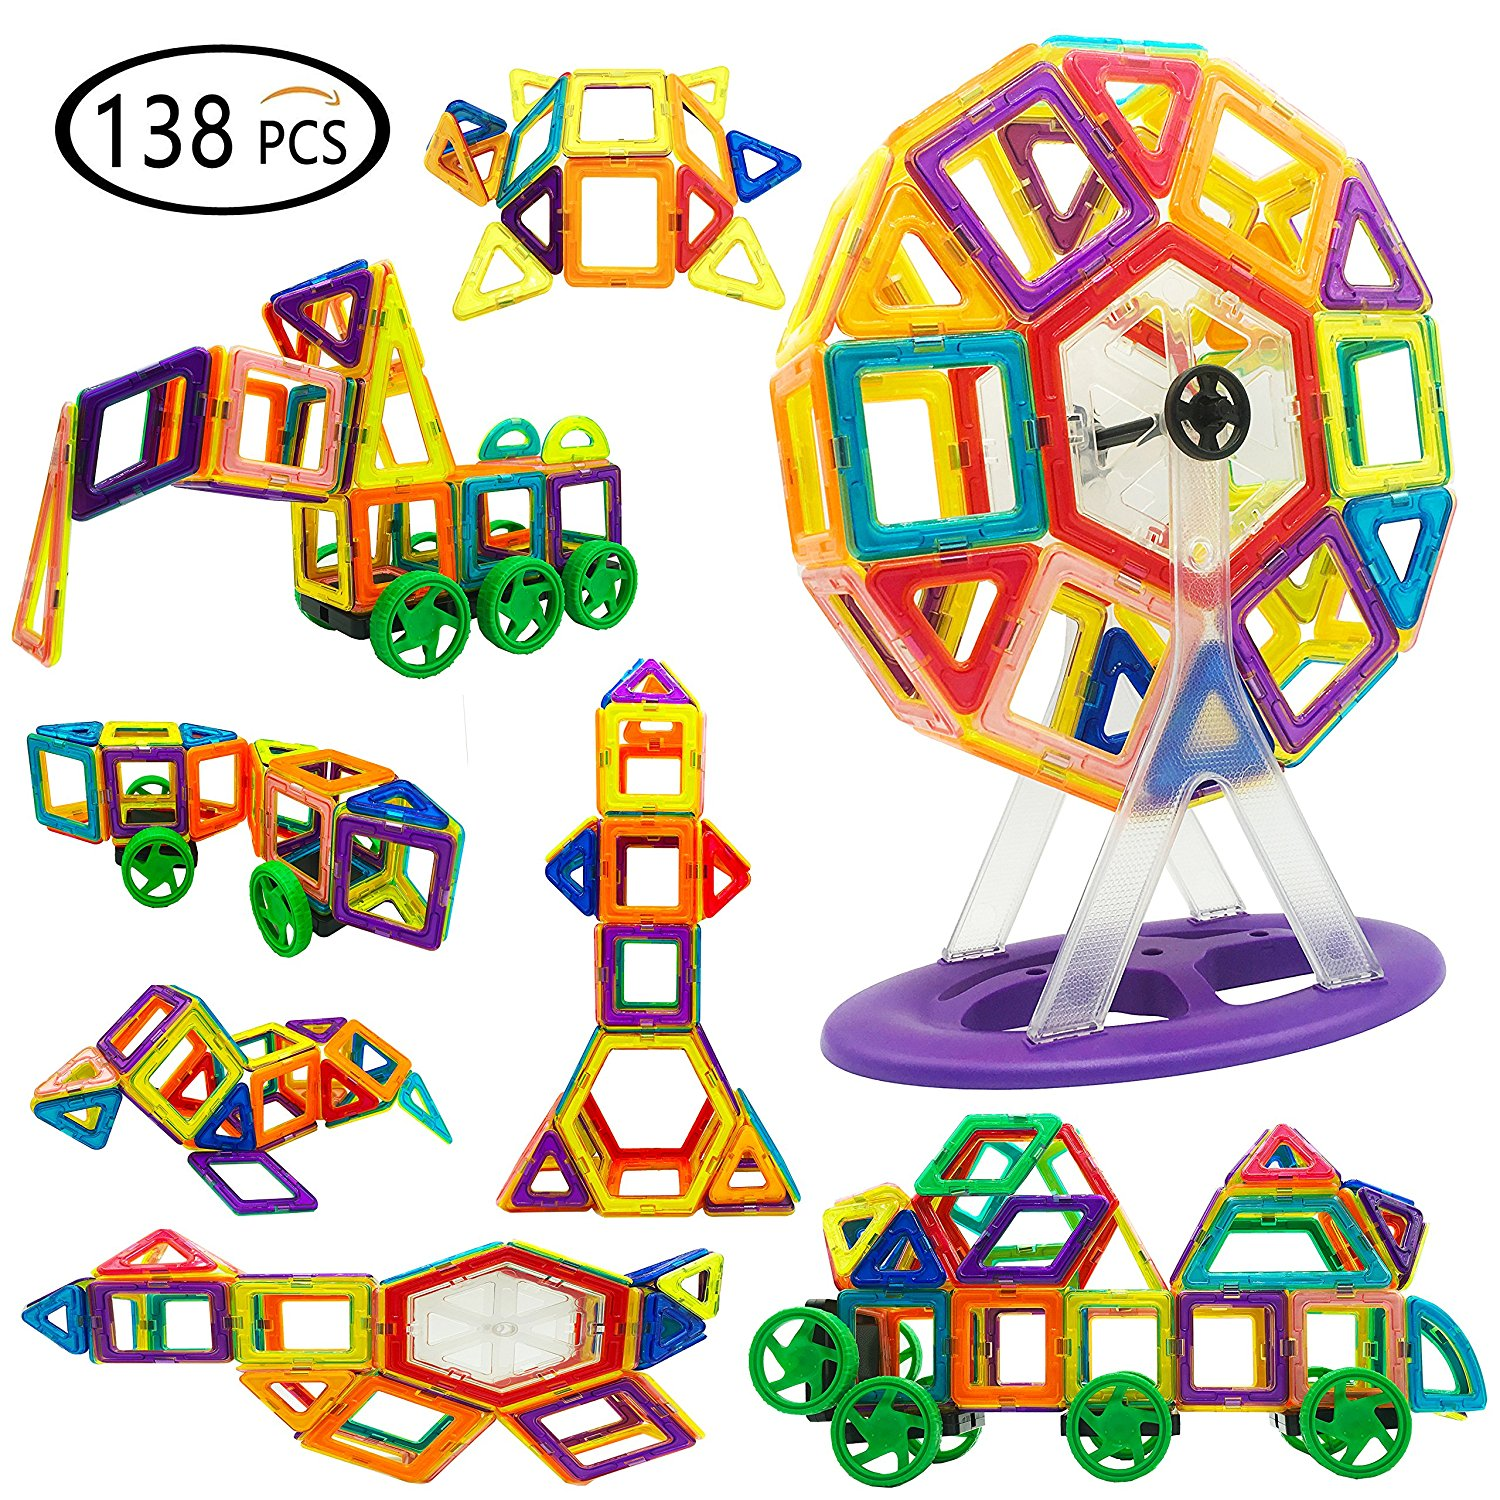 8f7f37c8a3d Reliancer 138PCS DIY Magnetic Building Blocks Set 3D Construction Building  Tiles Magnet Playboards Educational Block Stacking Toys Set For Kids  Creative ...